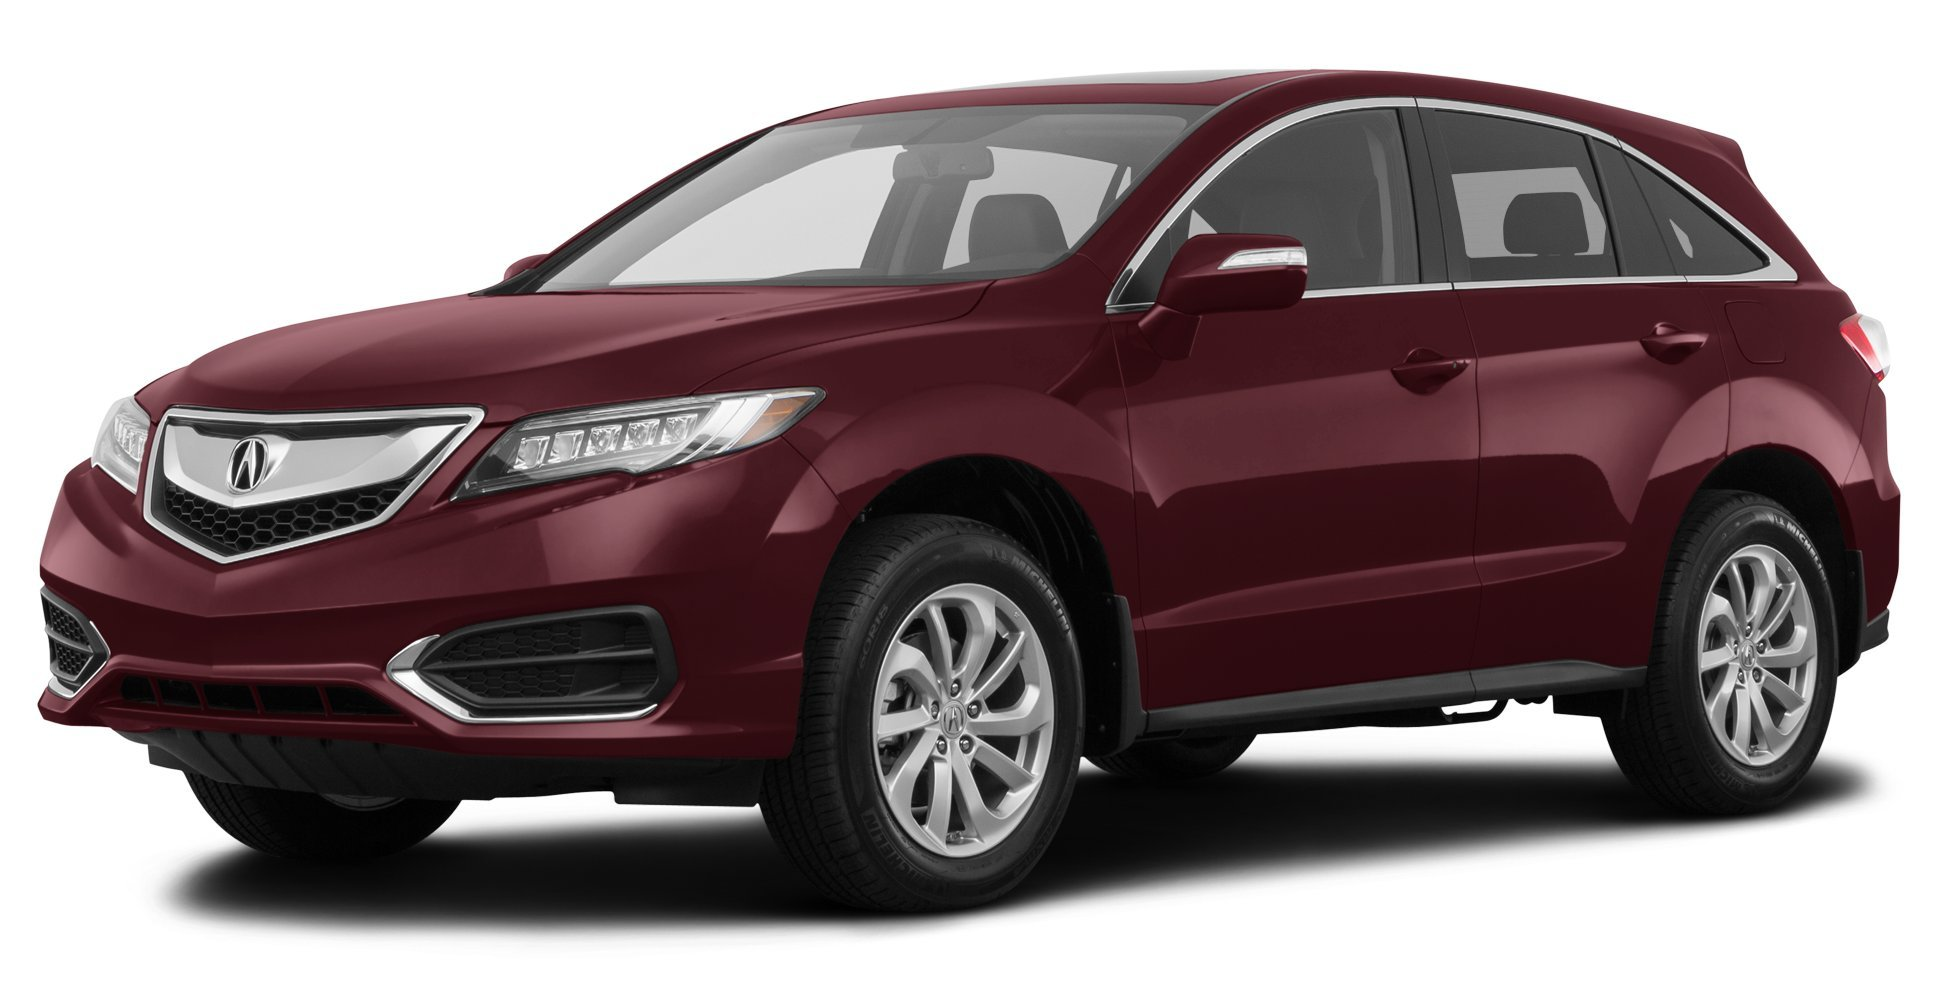 2017 acura rdx reviews images and specs vehicles. Black Bedroom Furniture Sets. Home Design Ideas